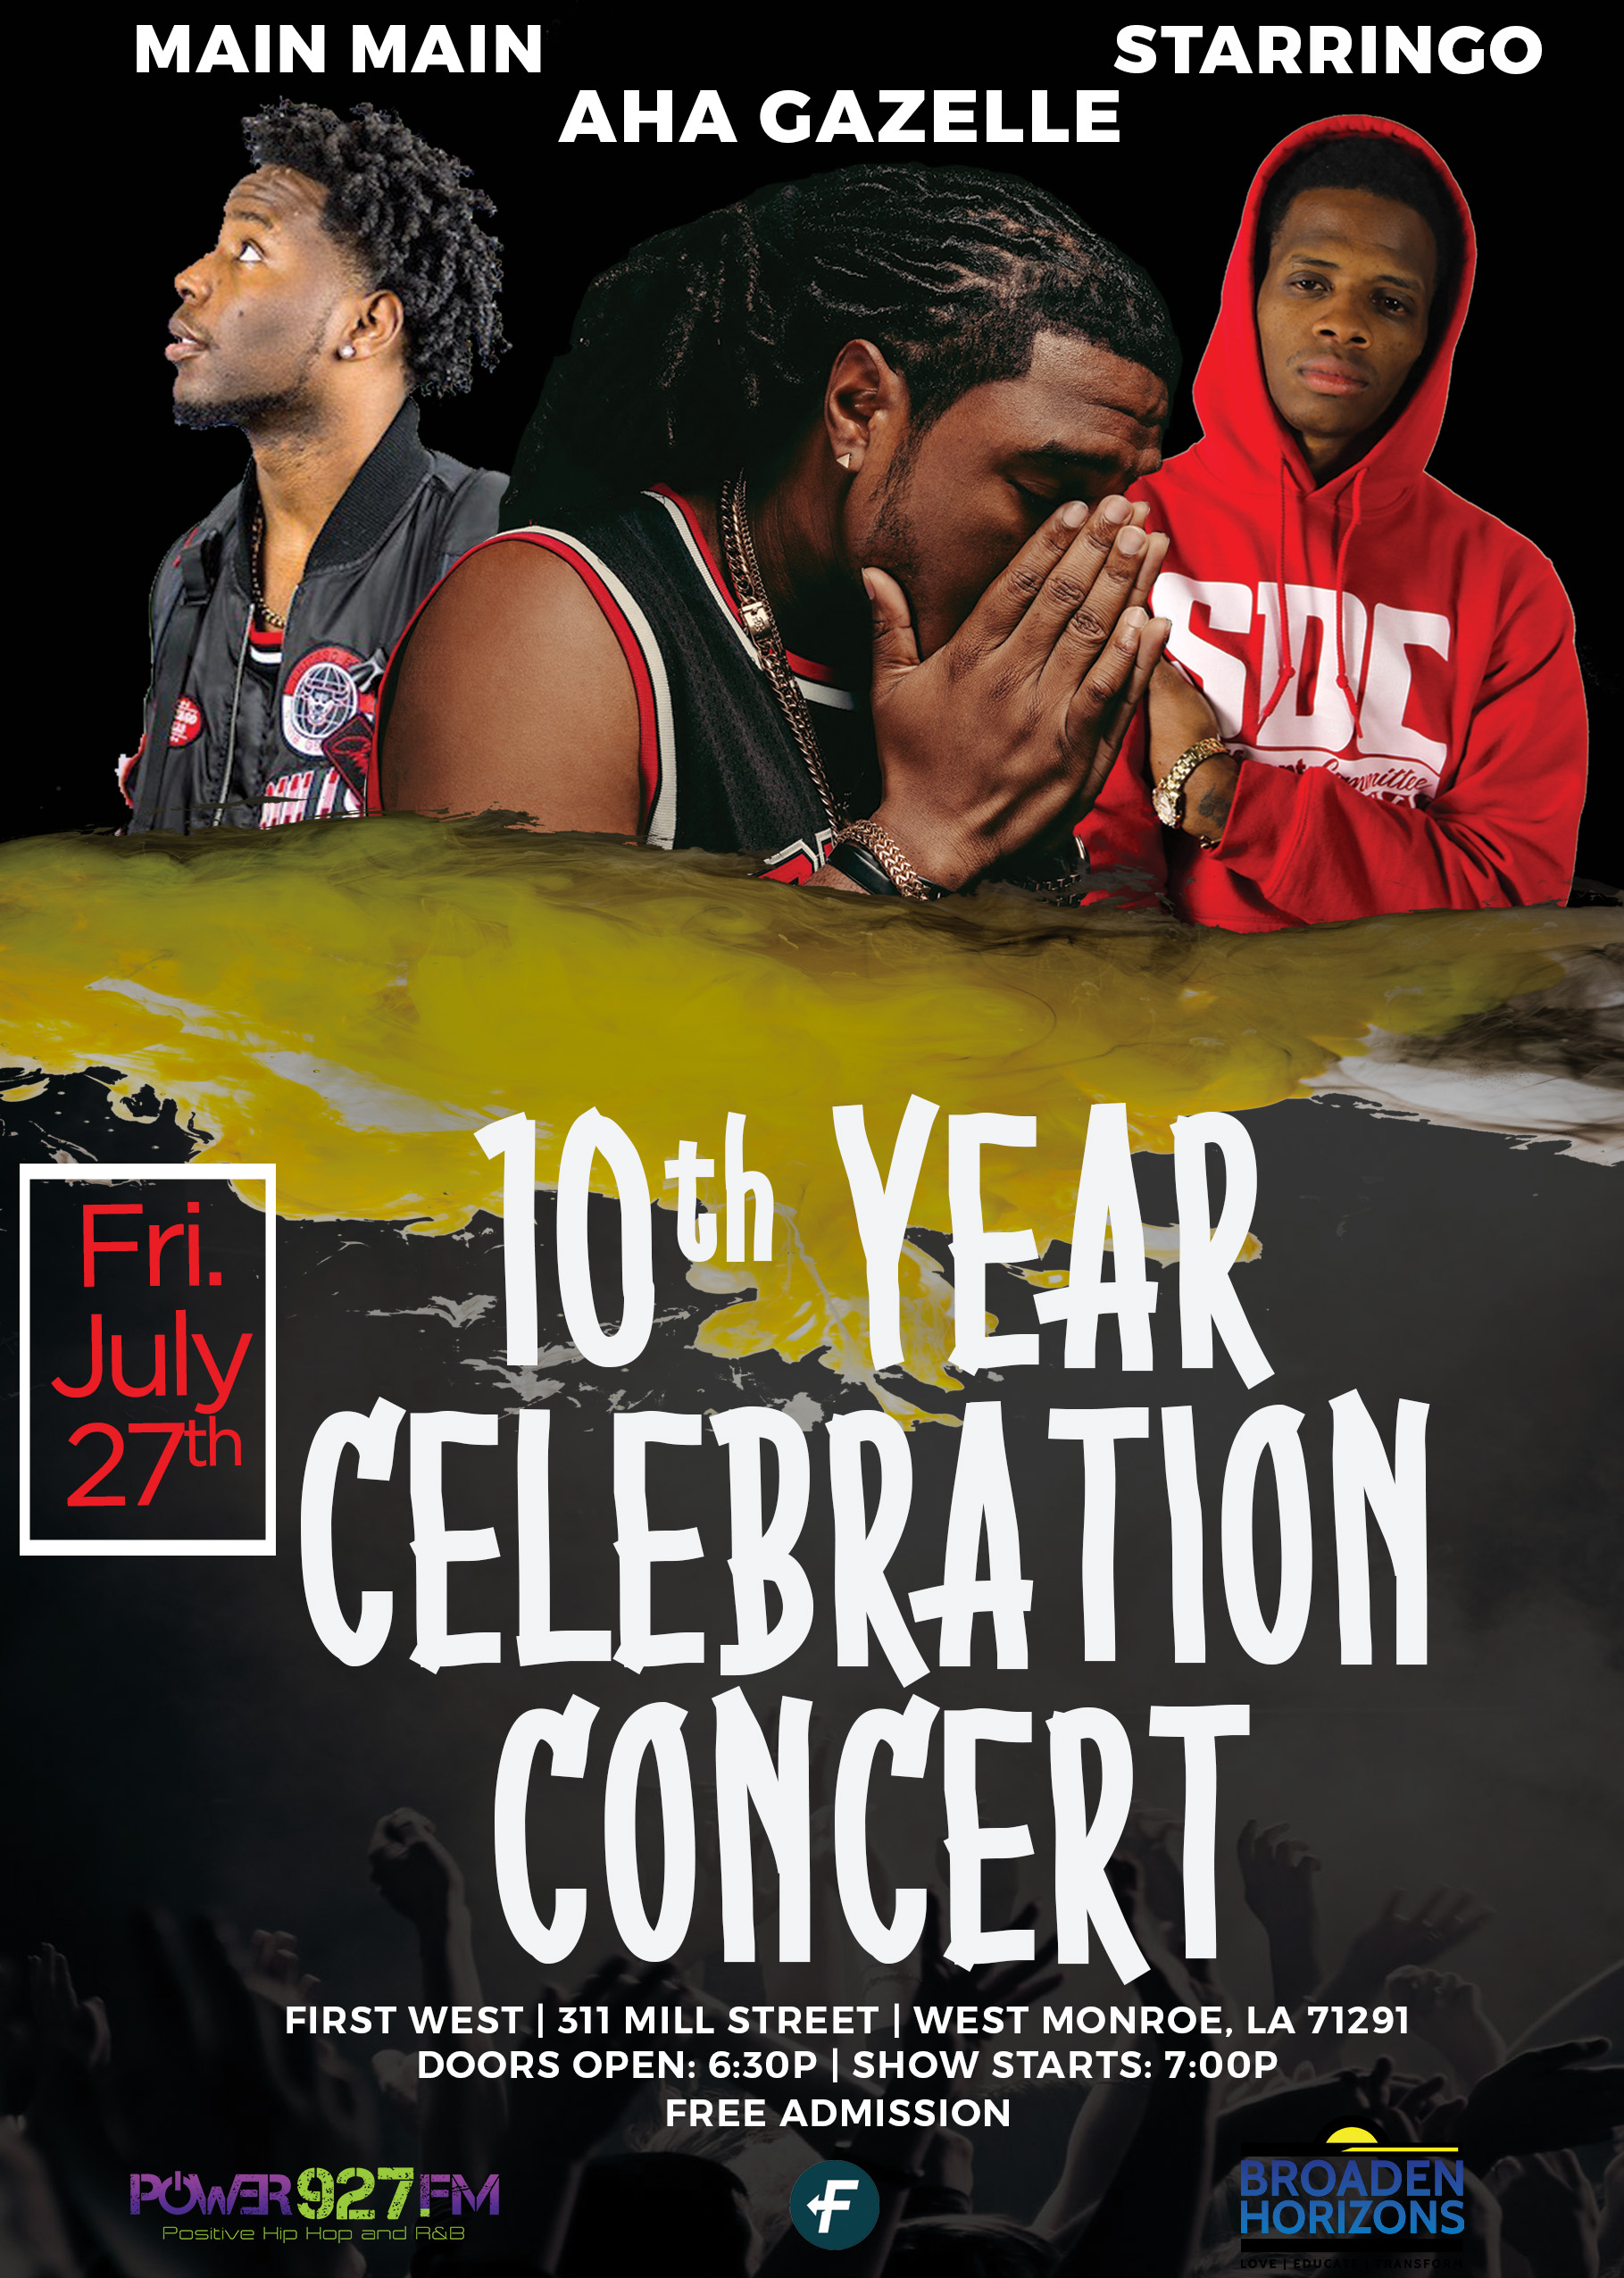 Broaden Horizons' 10th Year Celebration Concert